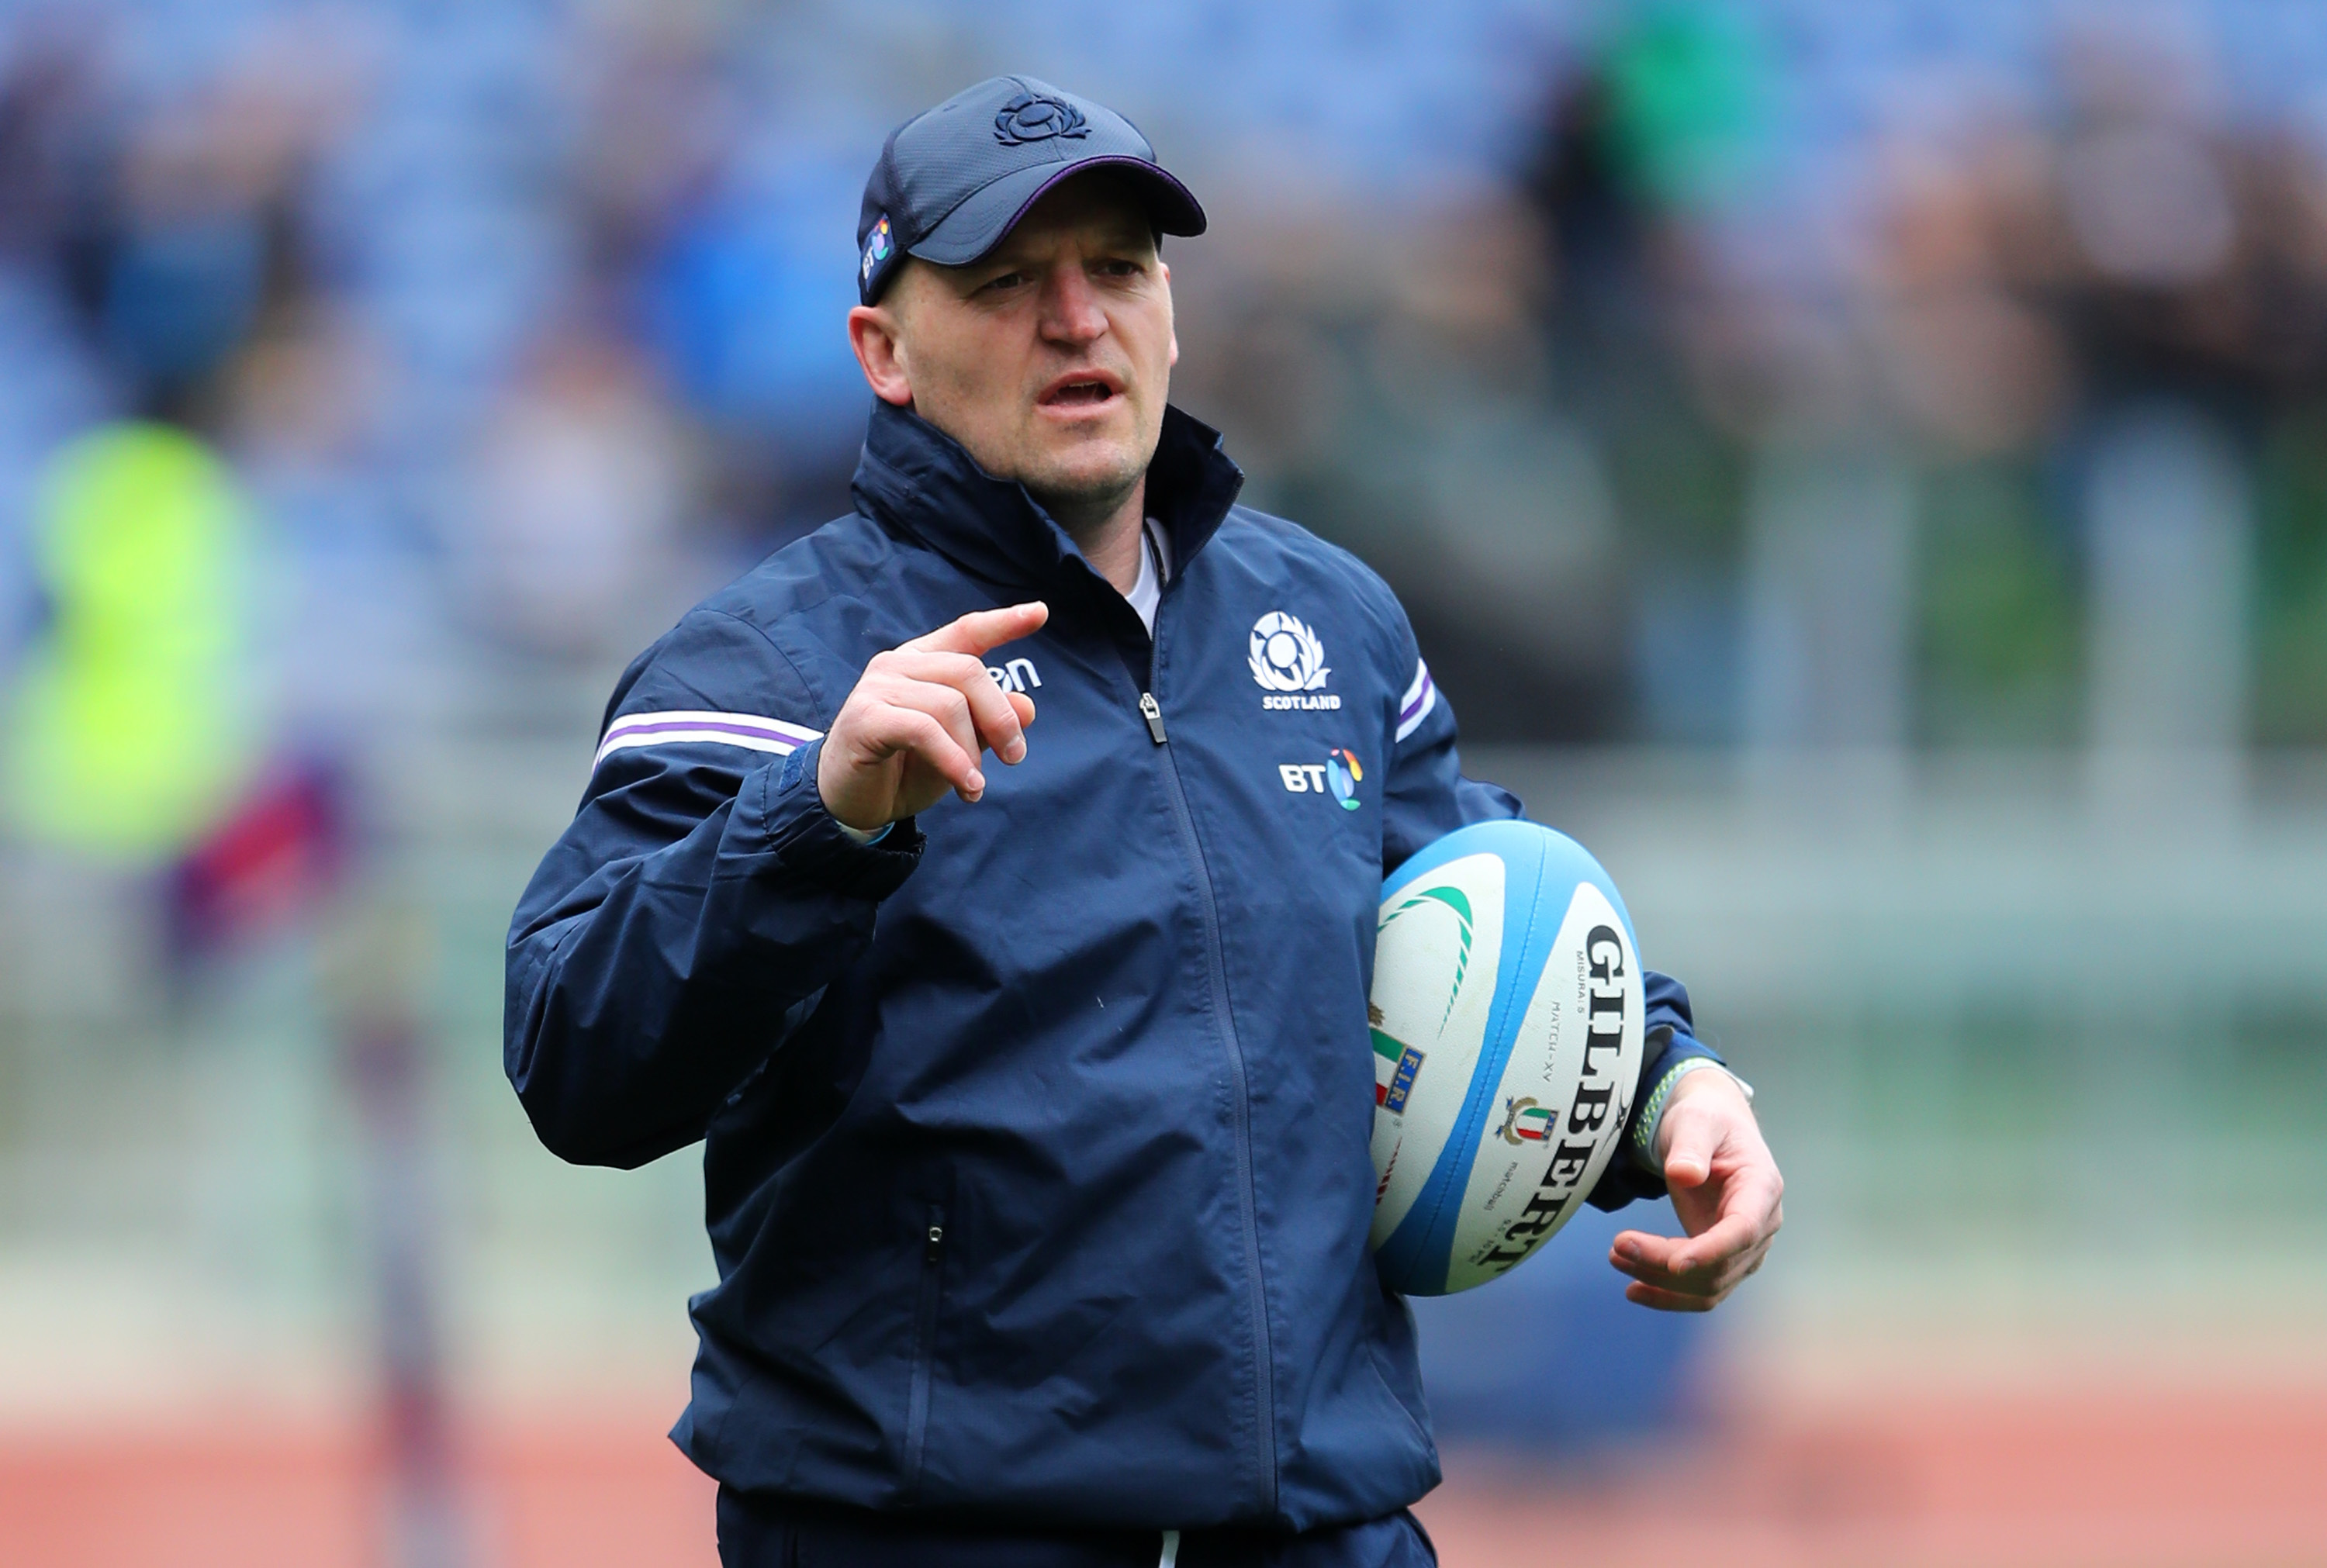 Gregor Townsend thinks Scotland played to their full potential for only an hour of the 6 Nations campaign.